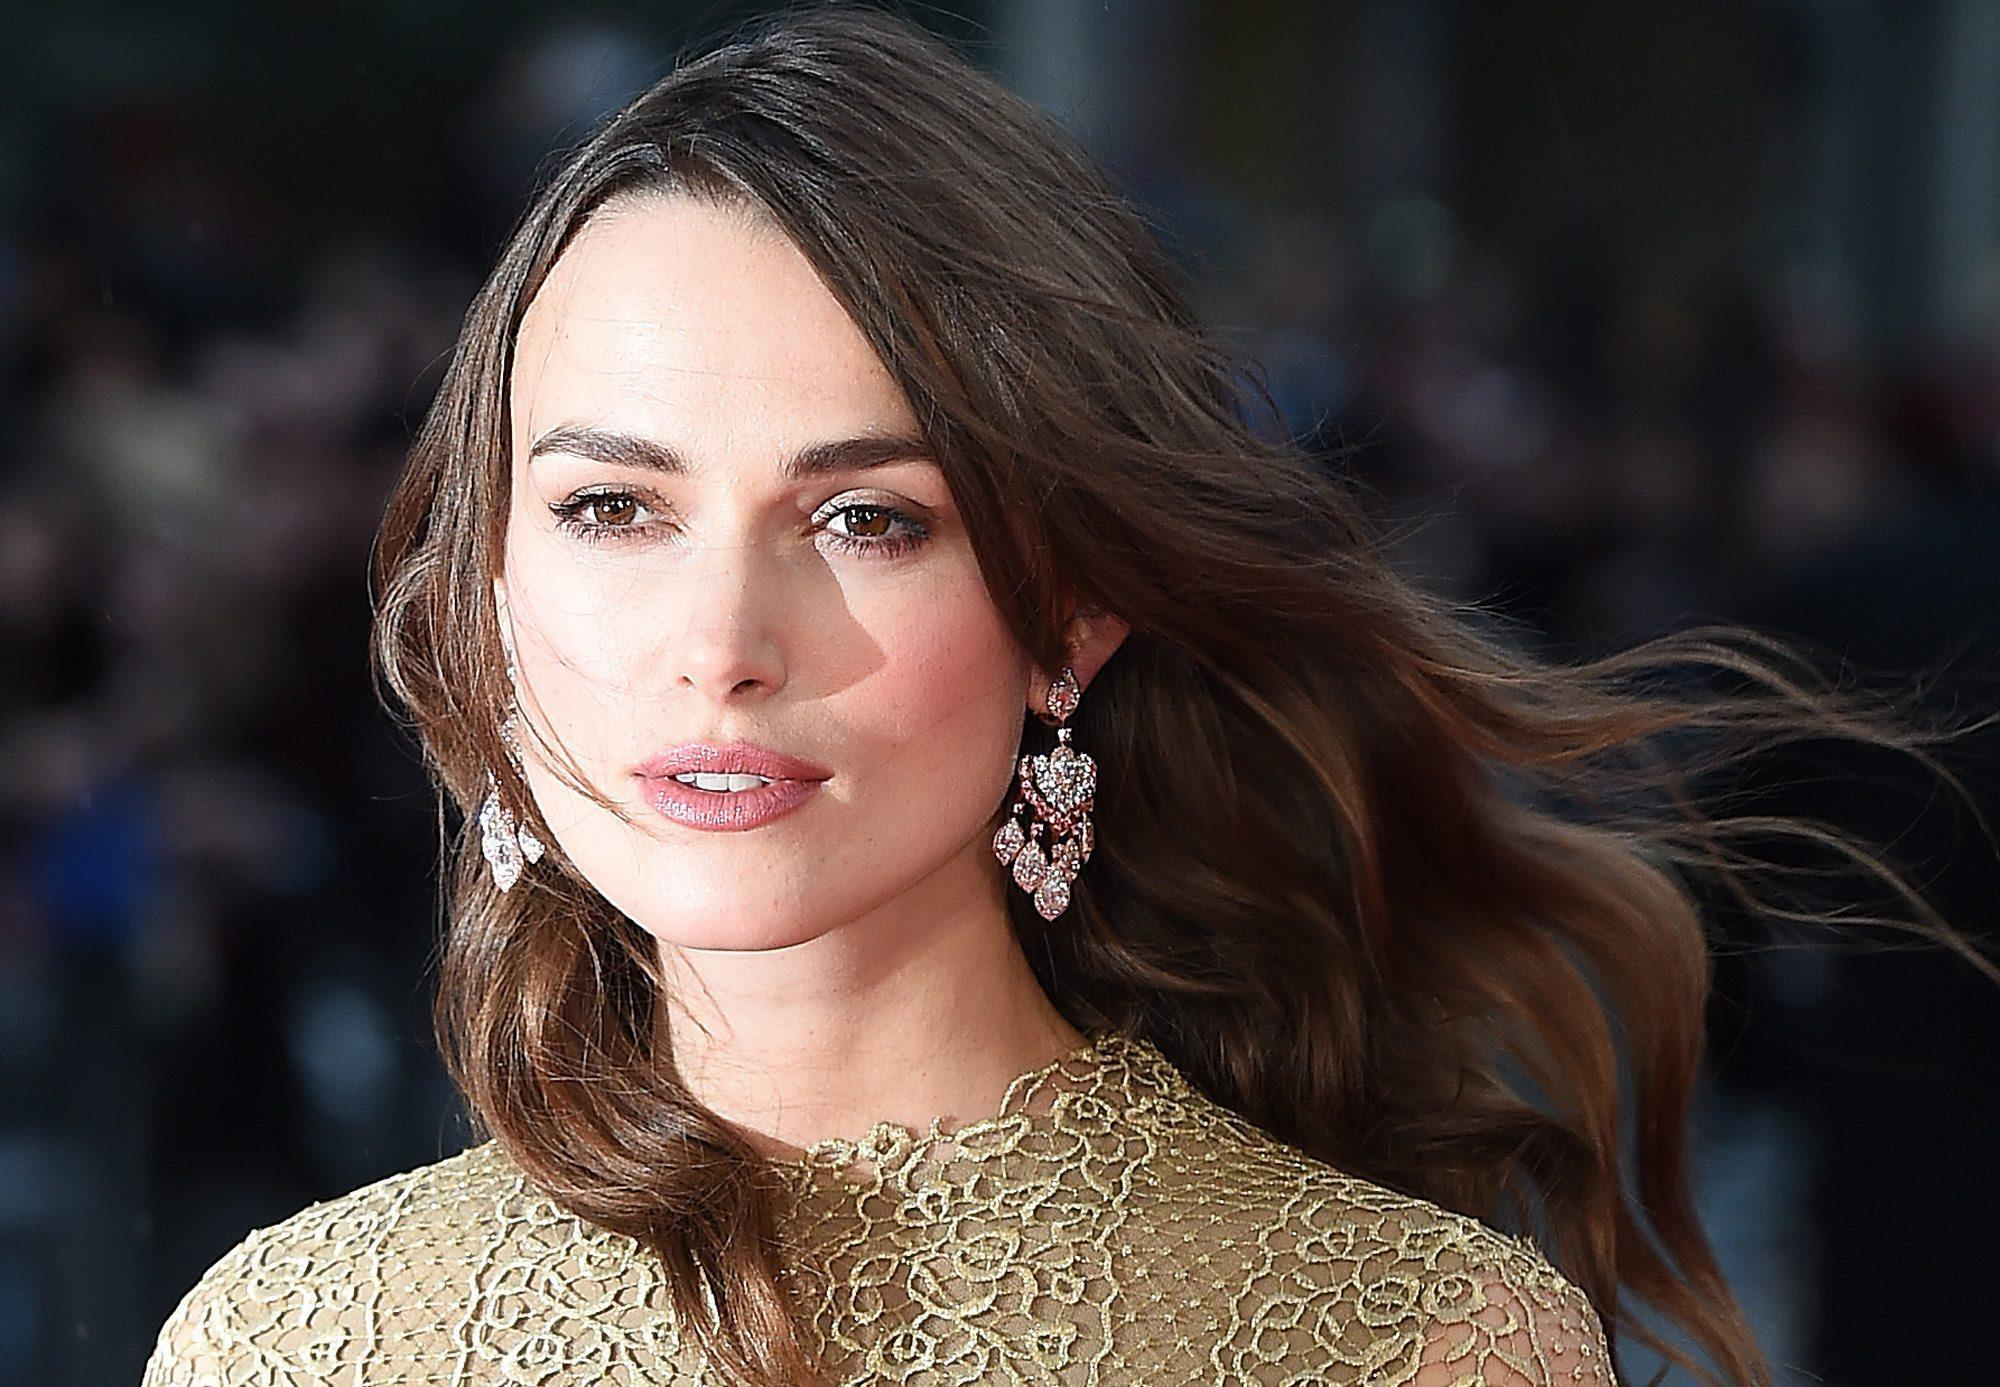 Keira Knightley attacca Kate Middleton per le foto post-parto: 'Visione falsa'